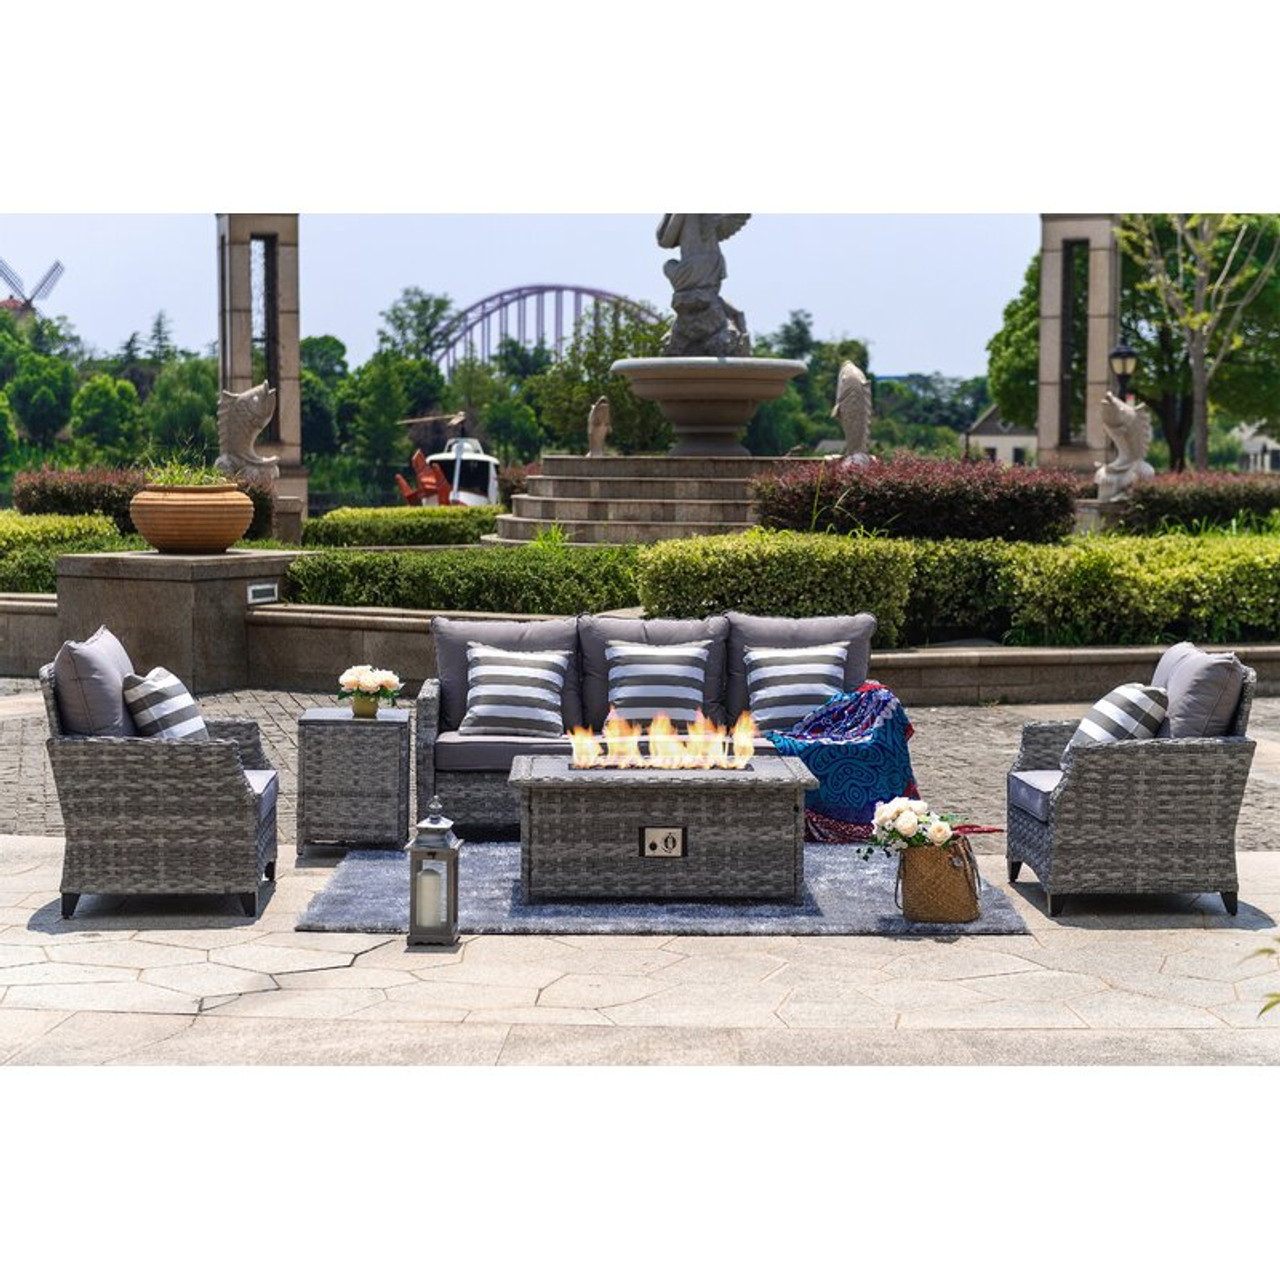 5 piece outdoor wicker patio sofa set with gas fire pit table burner system and cushions by direct wicker